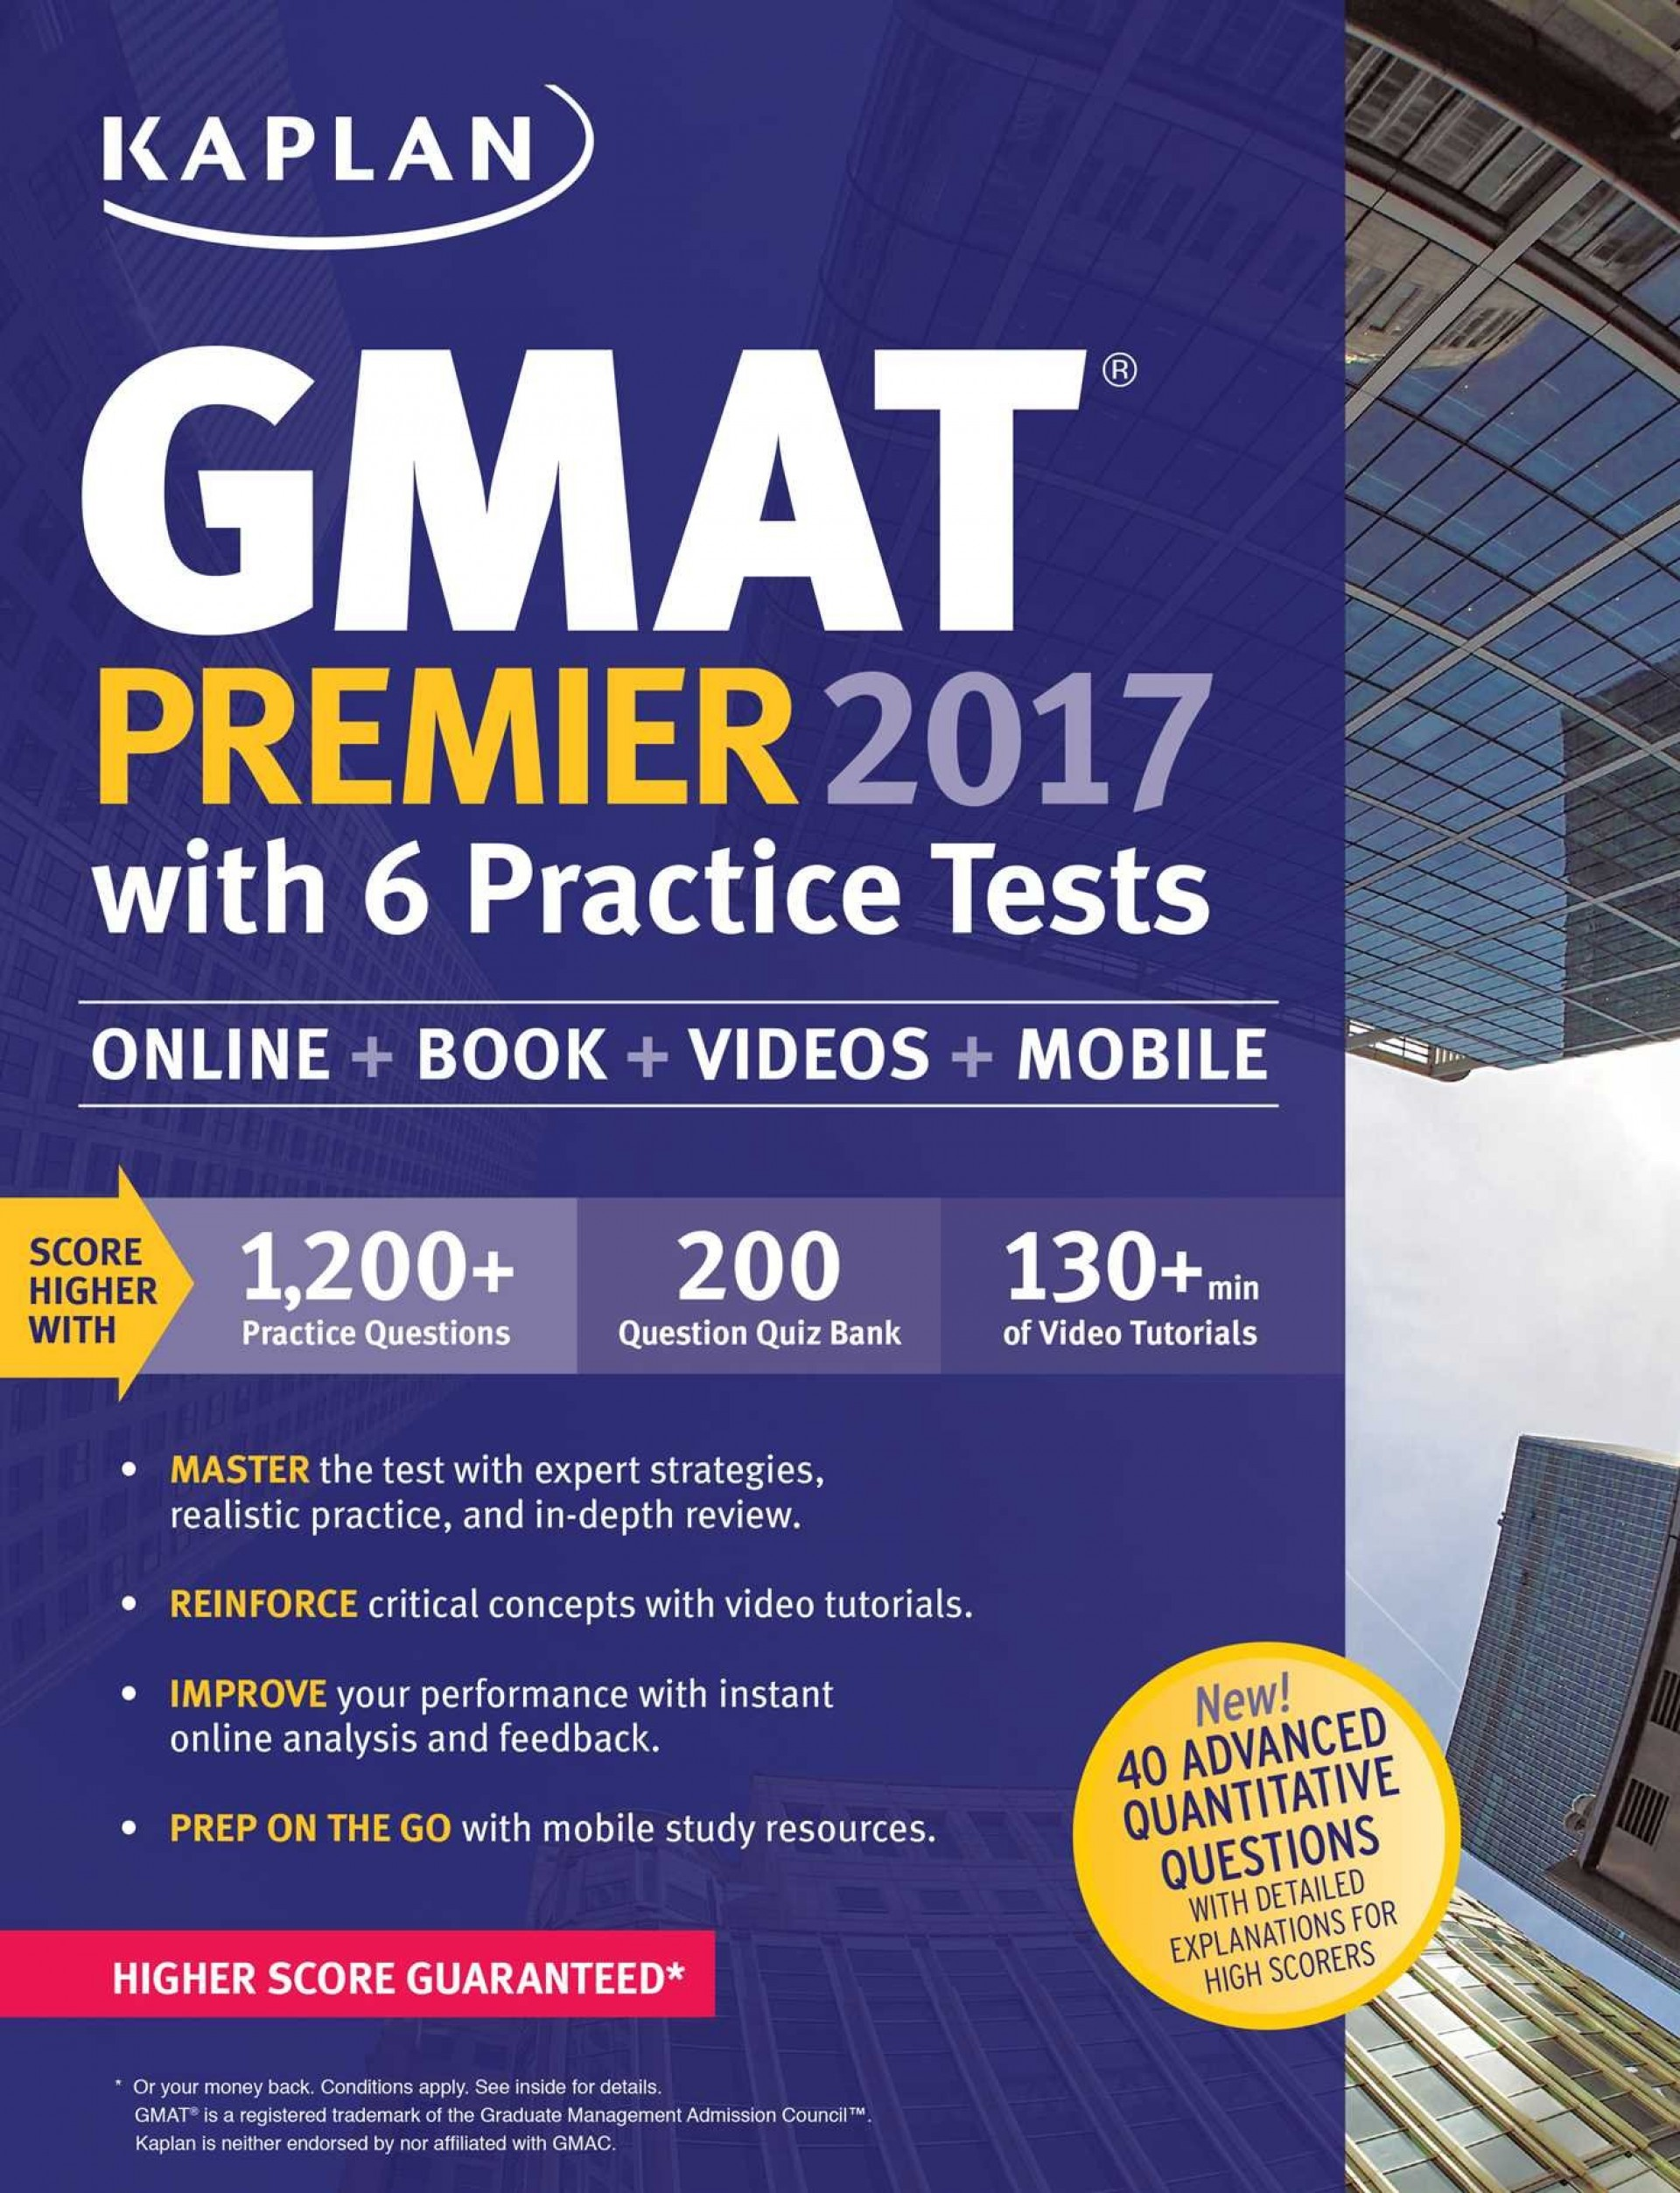 019 Essay Example Gmat Premier With Practice Tests Online Book Videos Mobile Kaplan Test Prep Hires Archaicawful Score Awa Range 5 1920